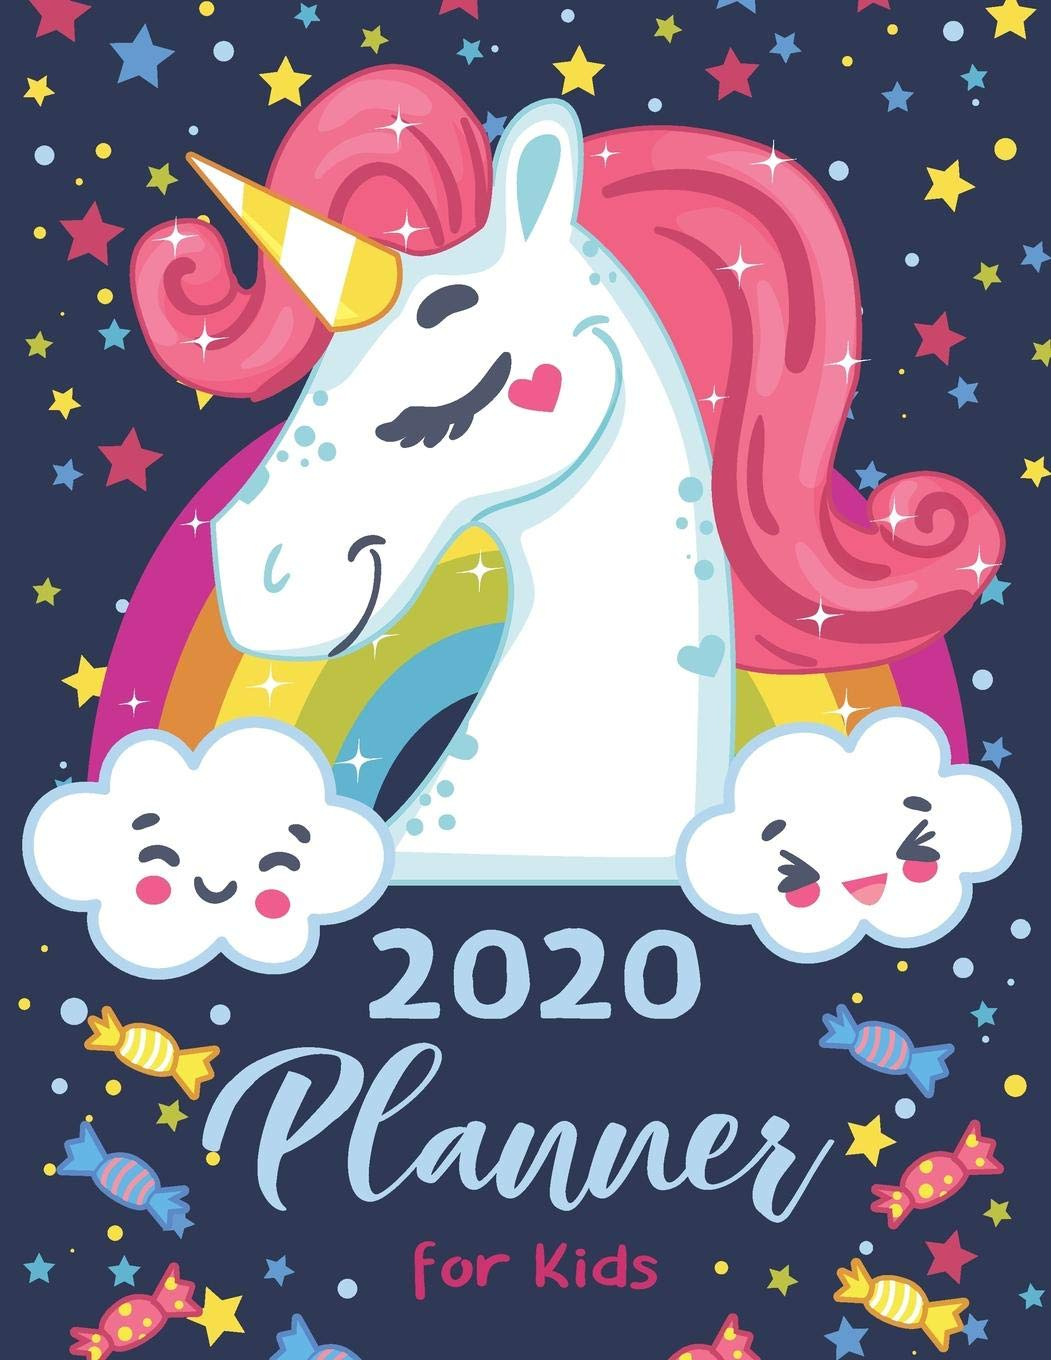 Kids December Calendar 2020 2020 Planner For Kids: Cute Unicorn Cover | Children's Daily